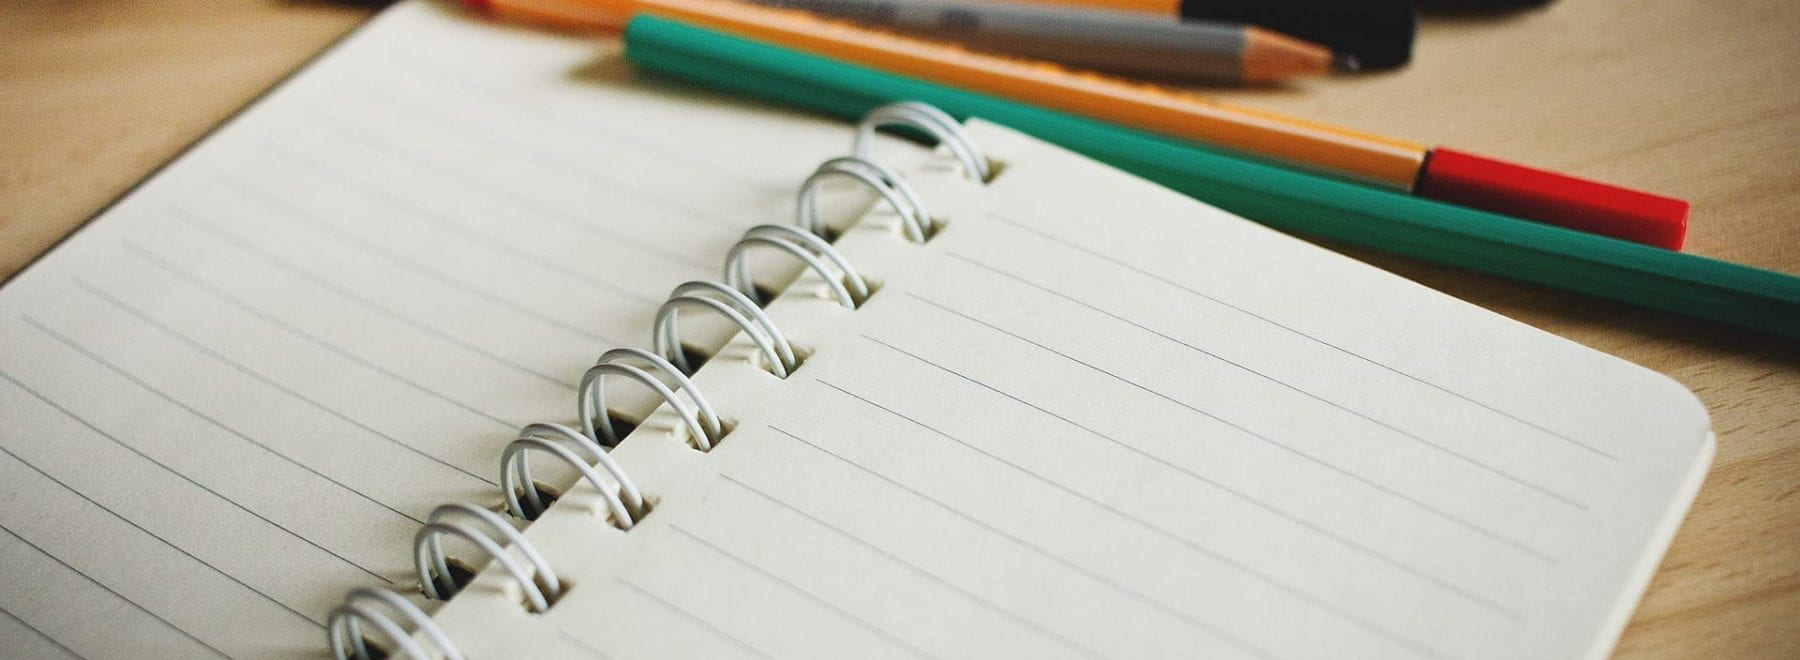 Open note pad and stationary